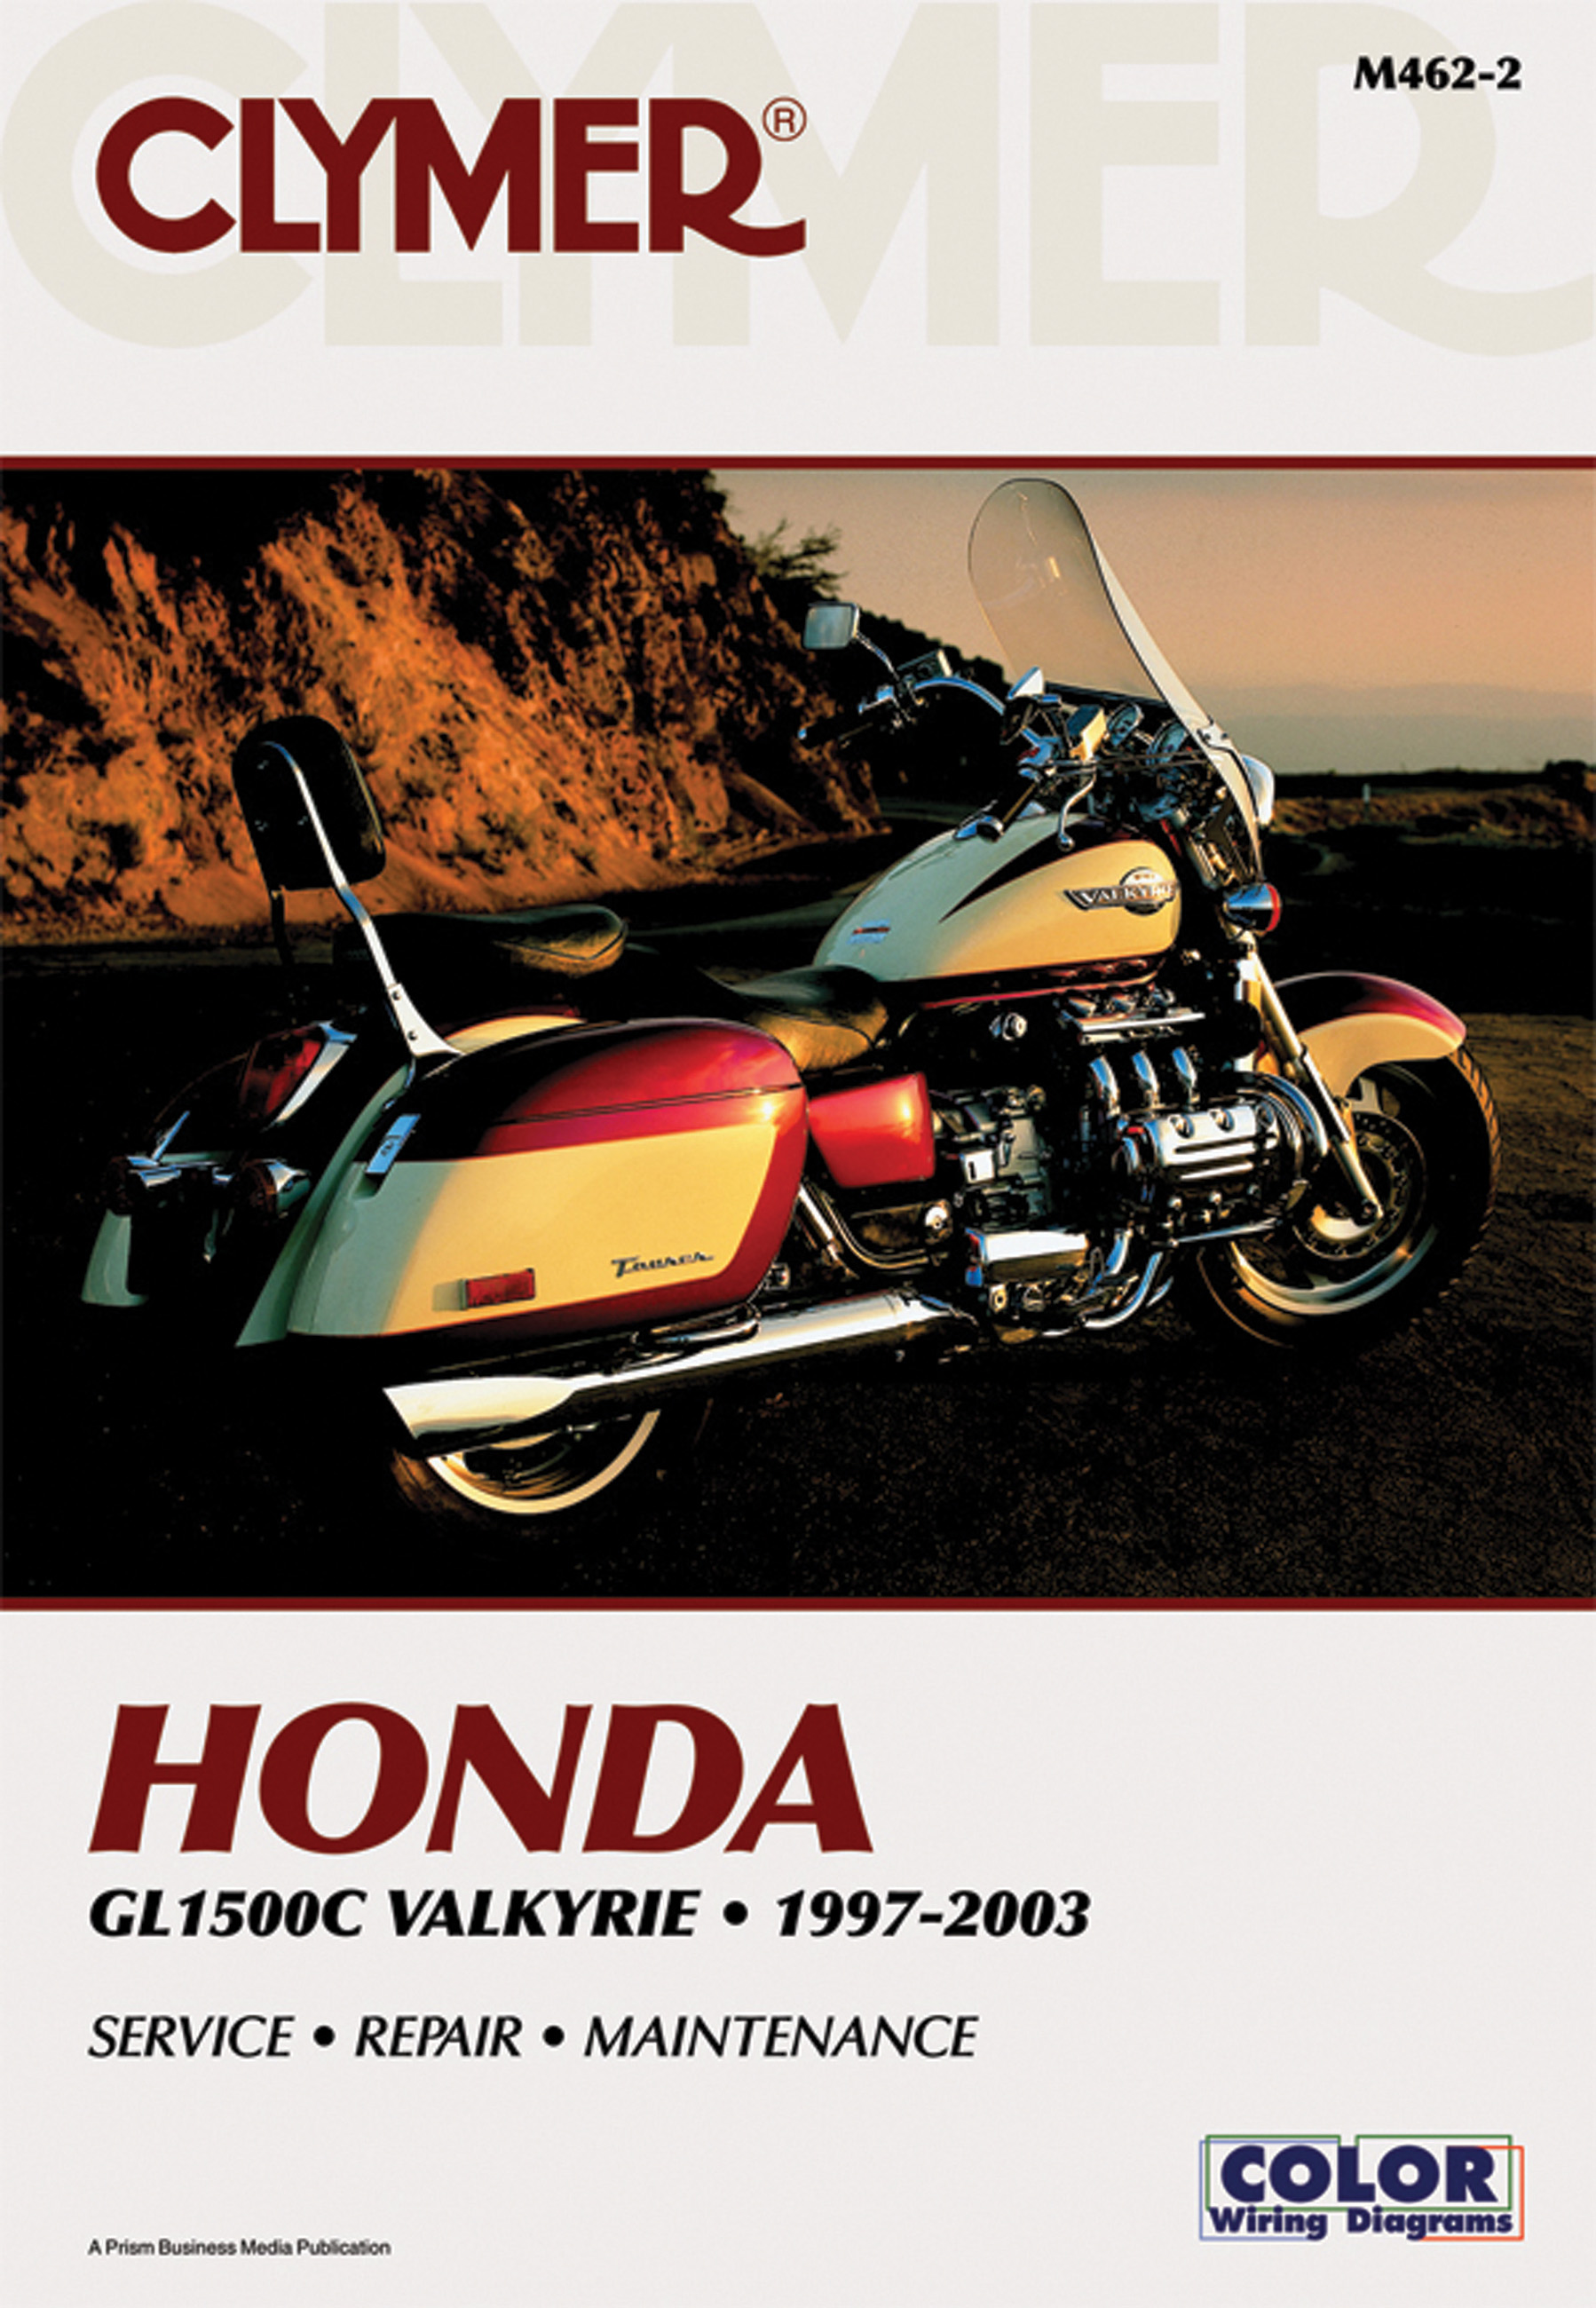 Honda Gl1500c Valkyrie Manual Service Shop Repair Clymer